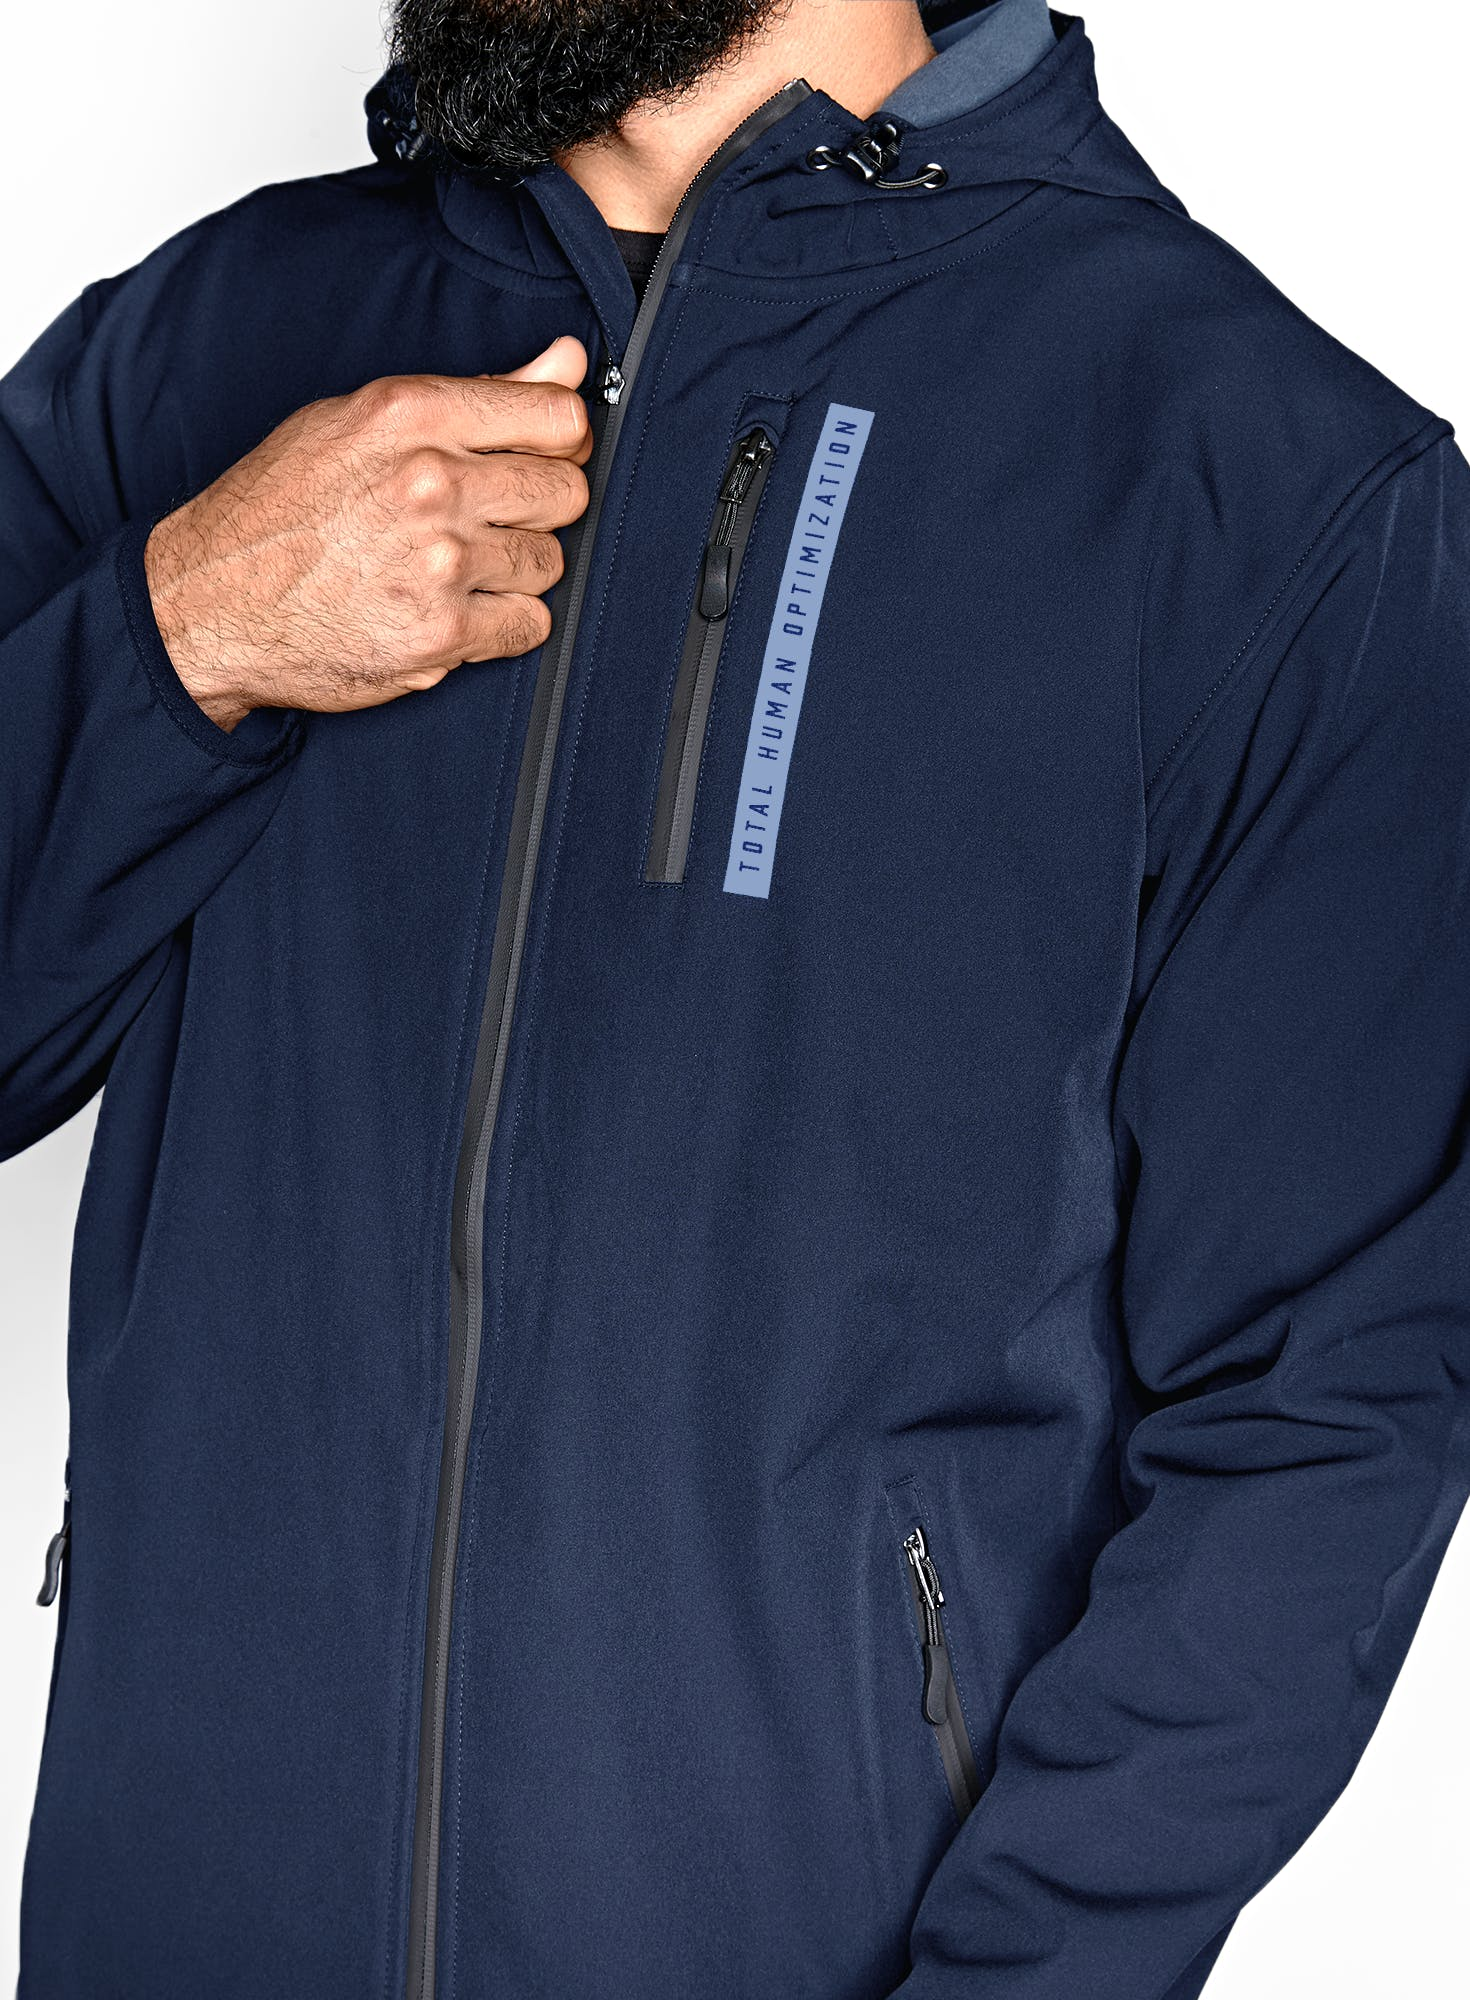 Straight Up Soft Shell Zip Jacket Bonus Image